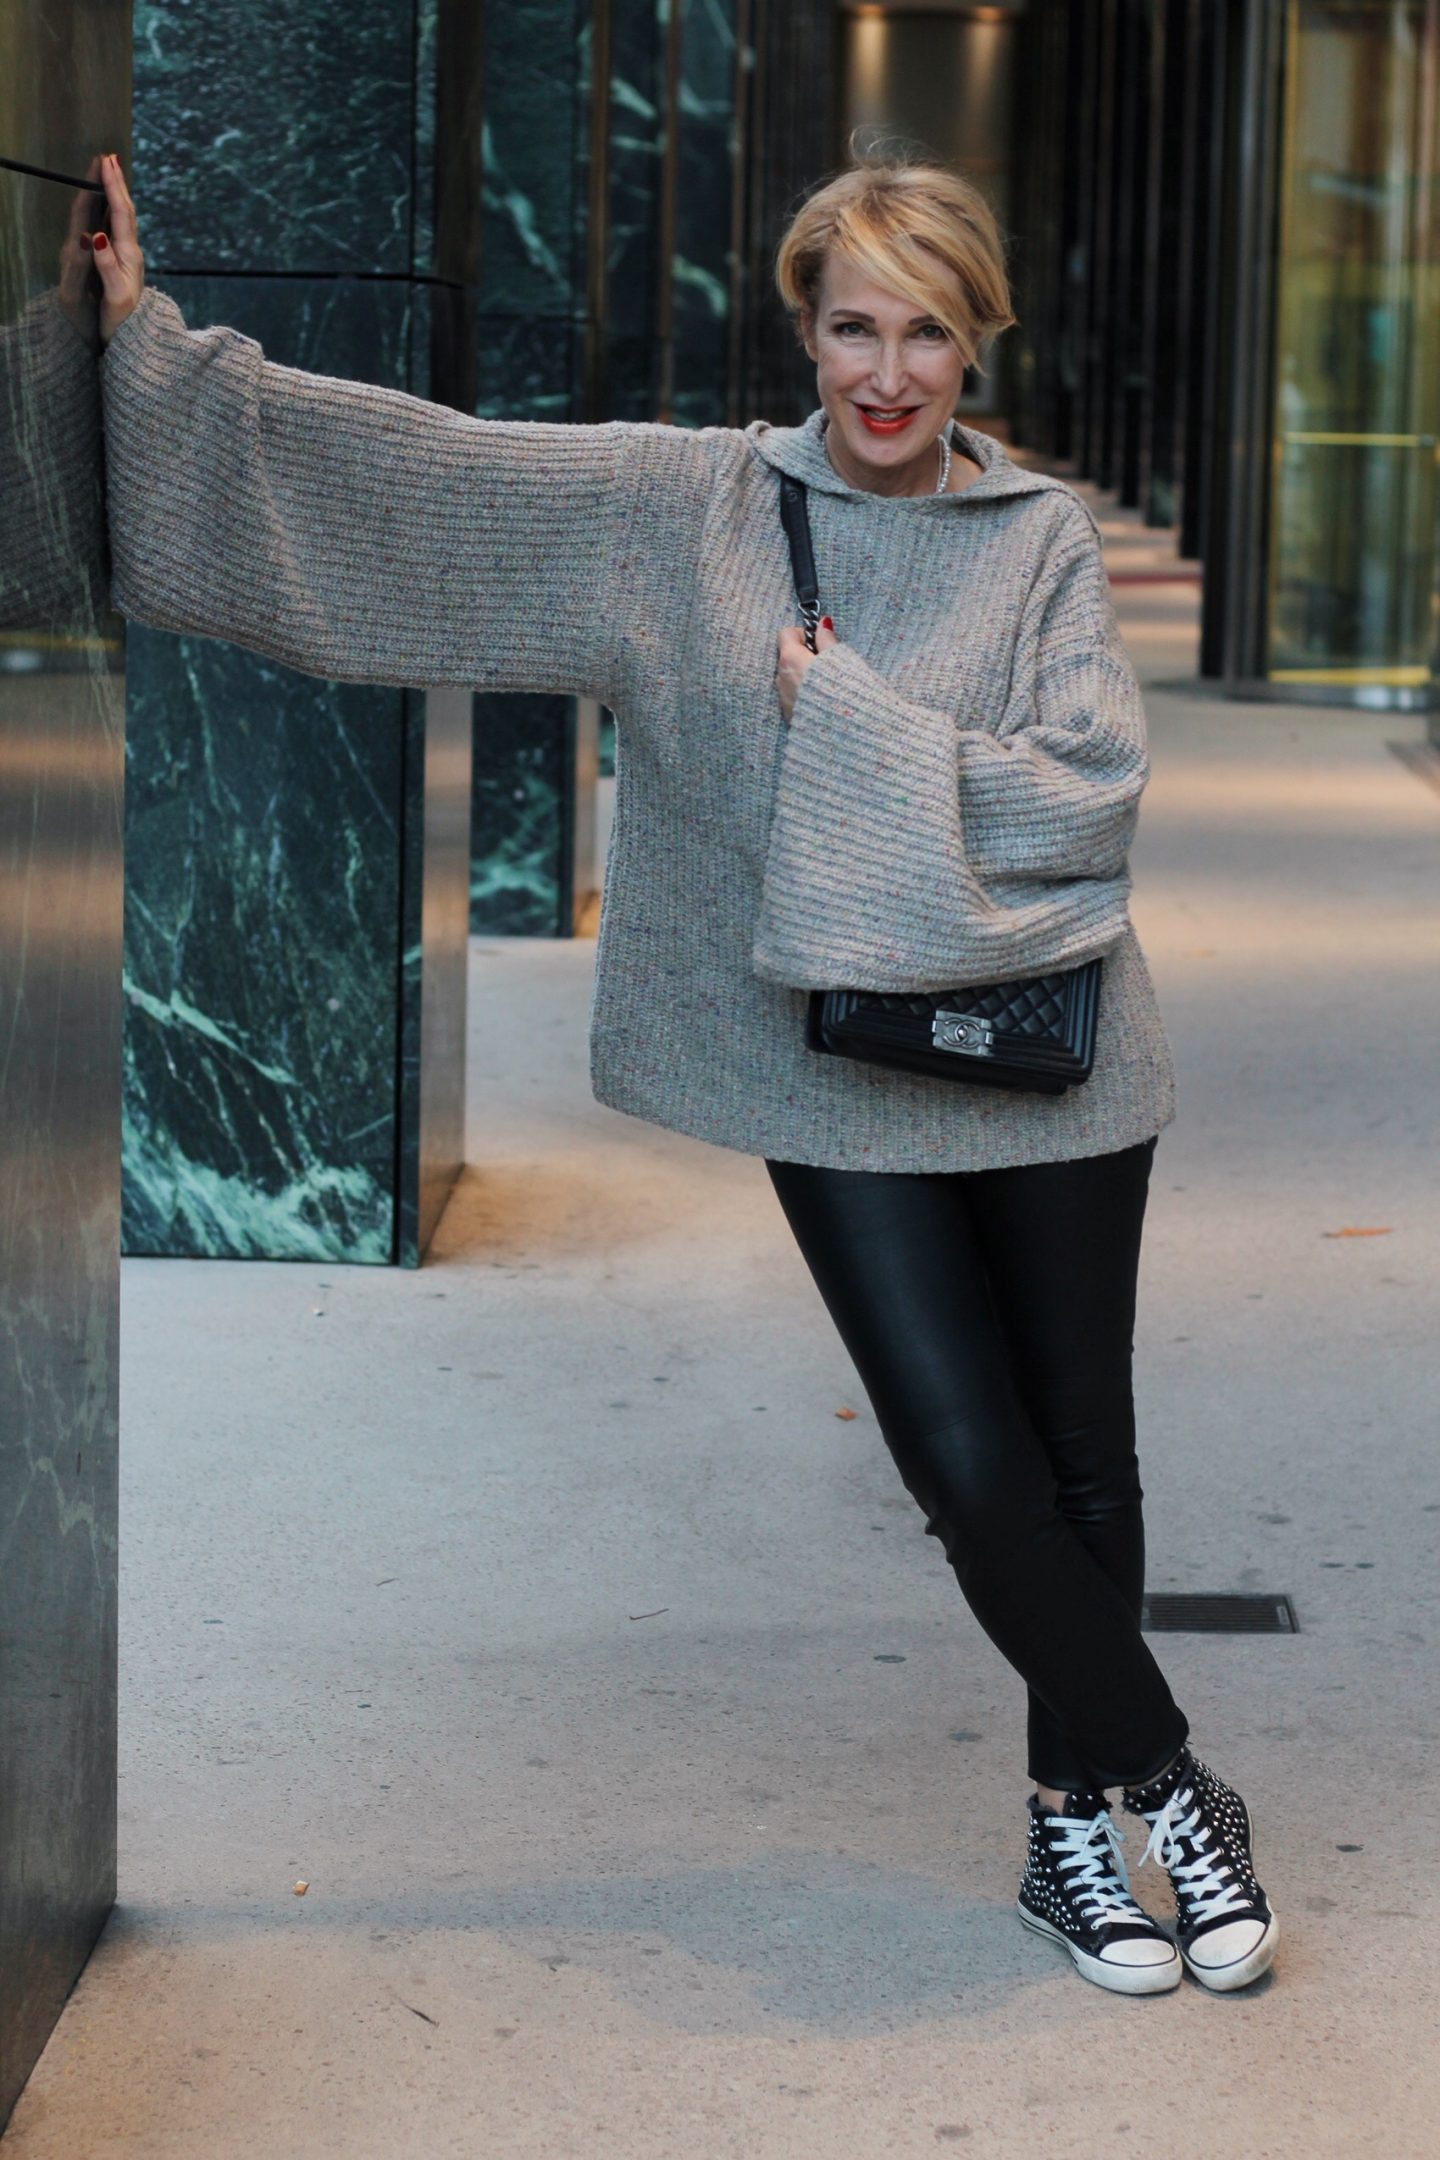 glamupyourlifestyle pullover Pullis Herbst-Outfit Herbst-Trends ü-40-blog ü-50-blog ue-40-blog ue-50-mode